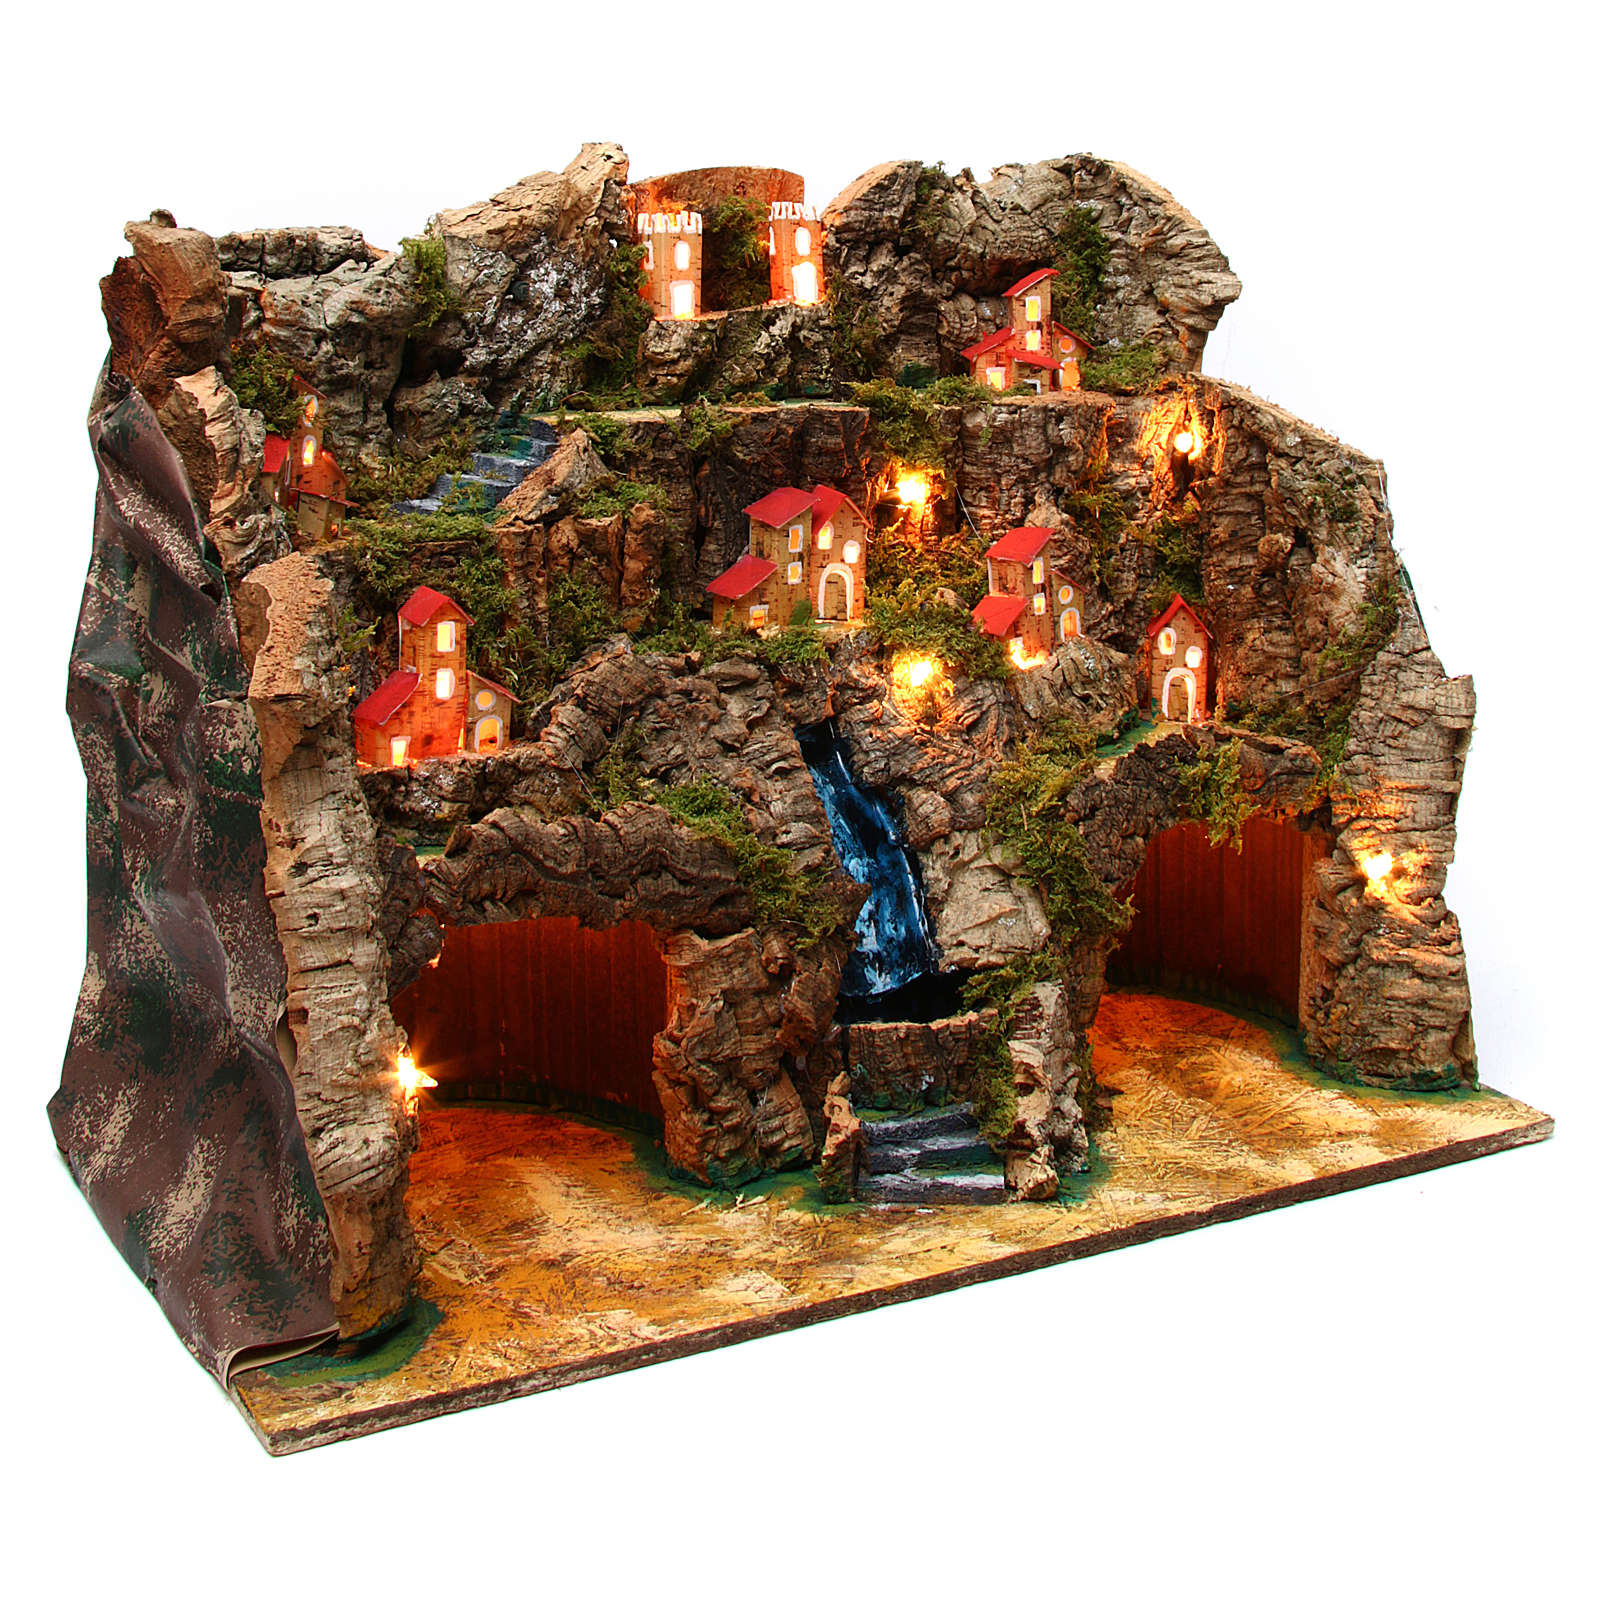 Nativity scene setting with water stream 60x35x50 cm for 10-12 cm characters 4